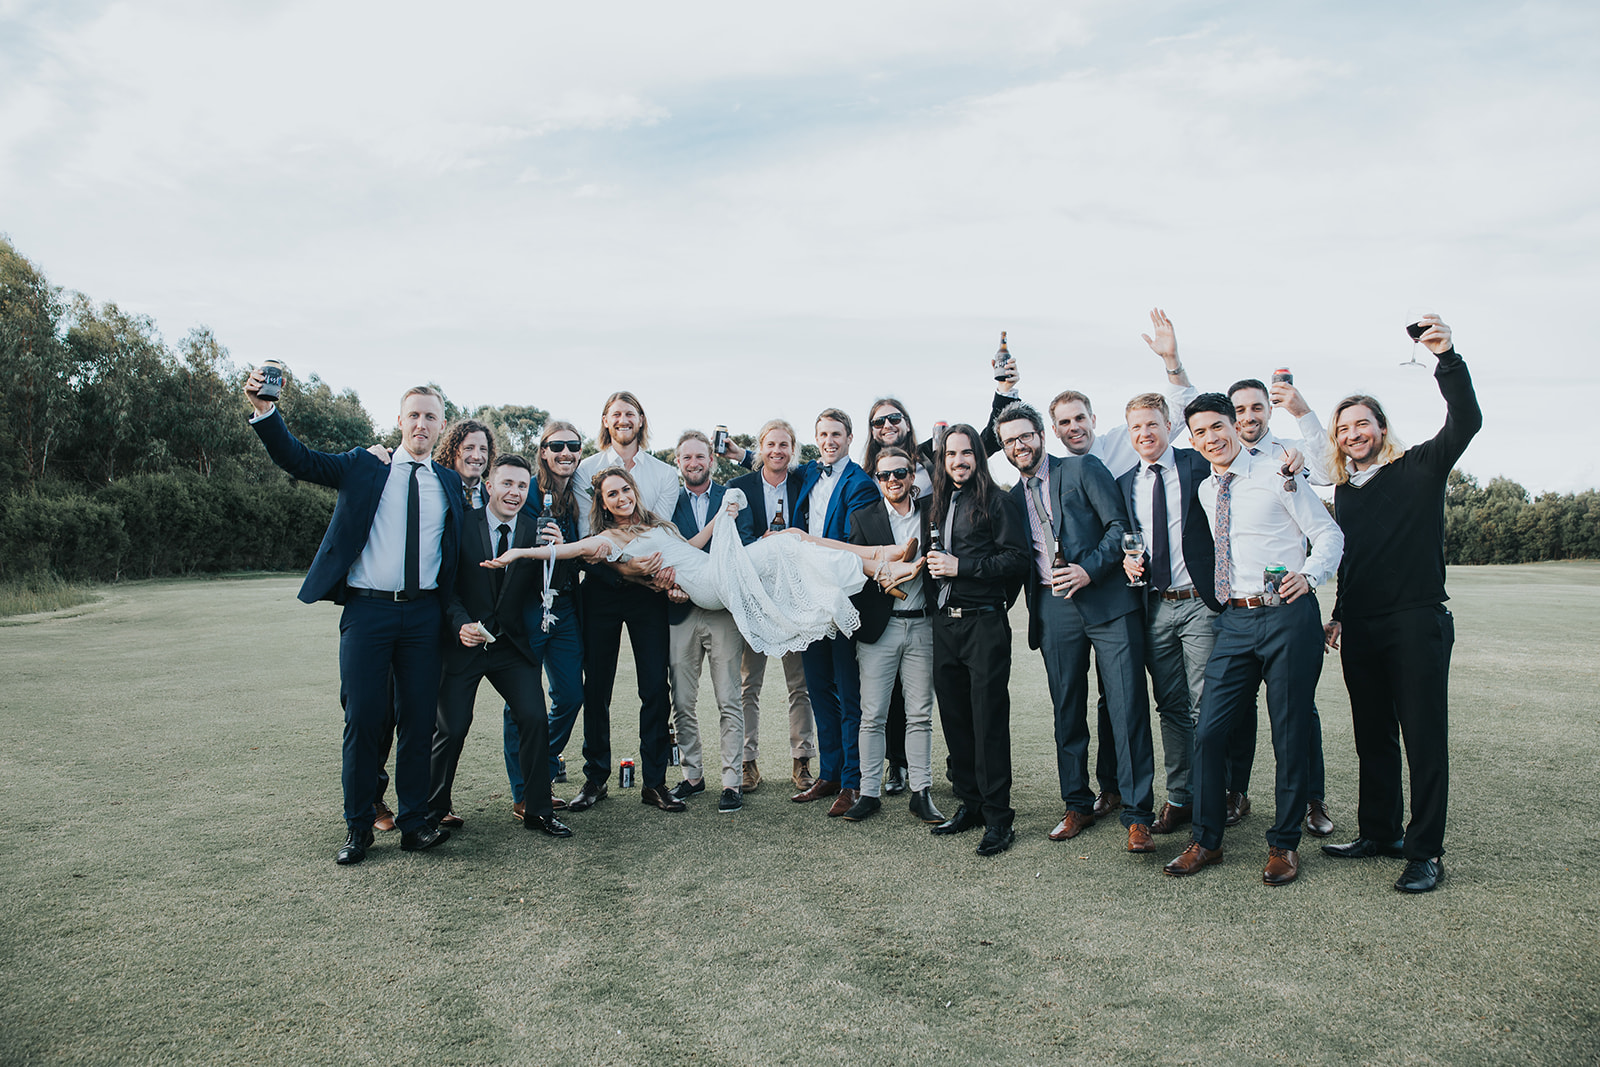 JENNA AND LUKE DEVILS DAM WEDDING MELBOURNE WEDDING VENUES